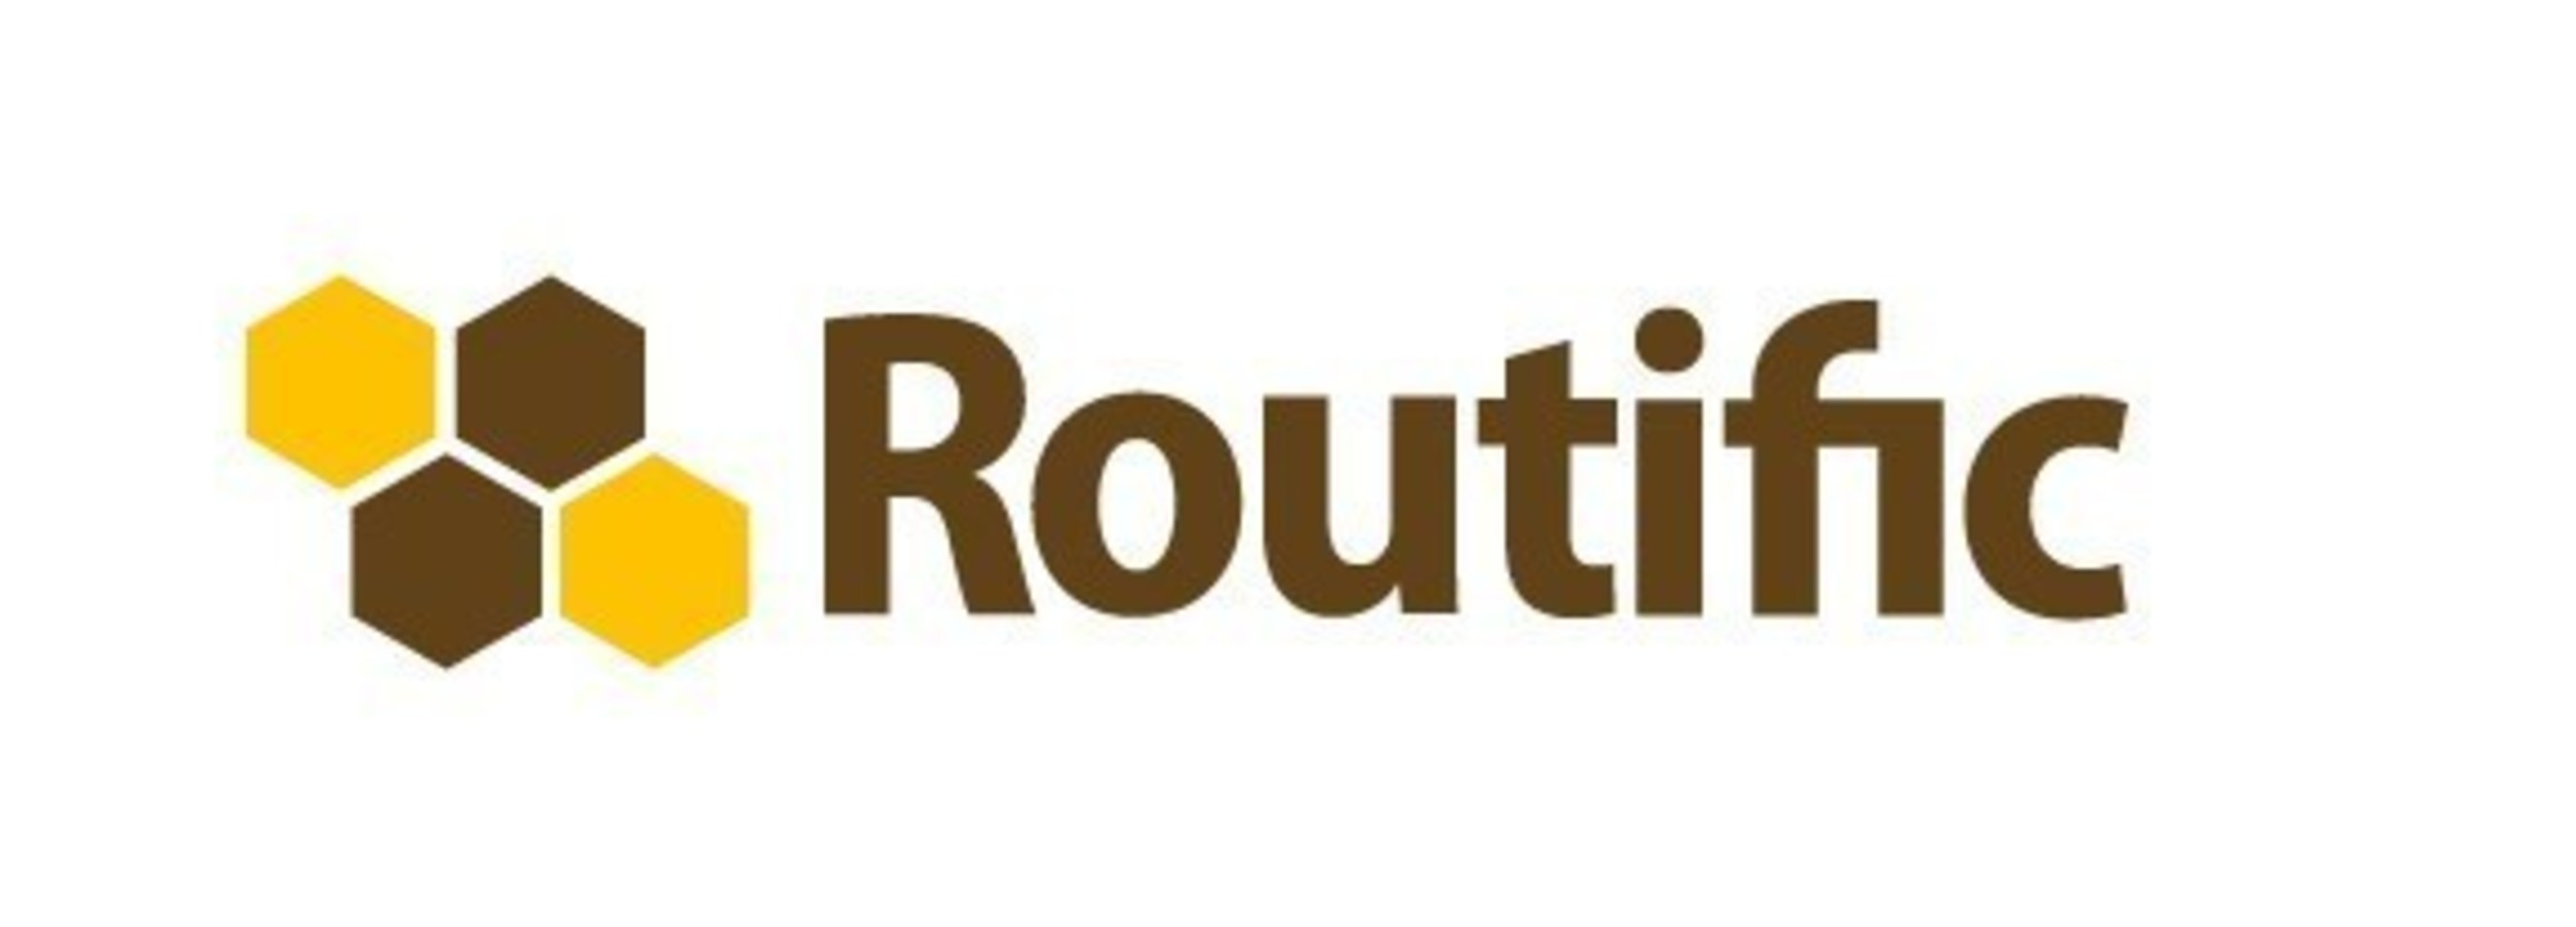 Routific Announces Robust 2015 Growth